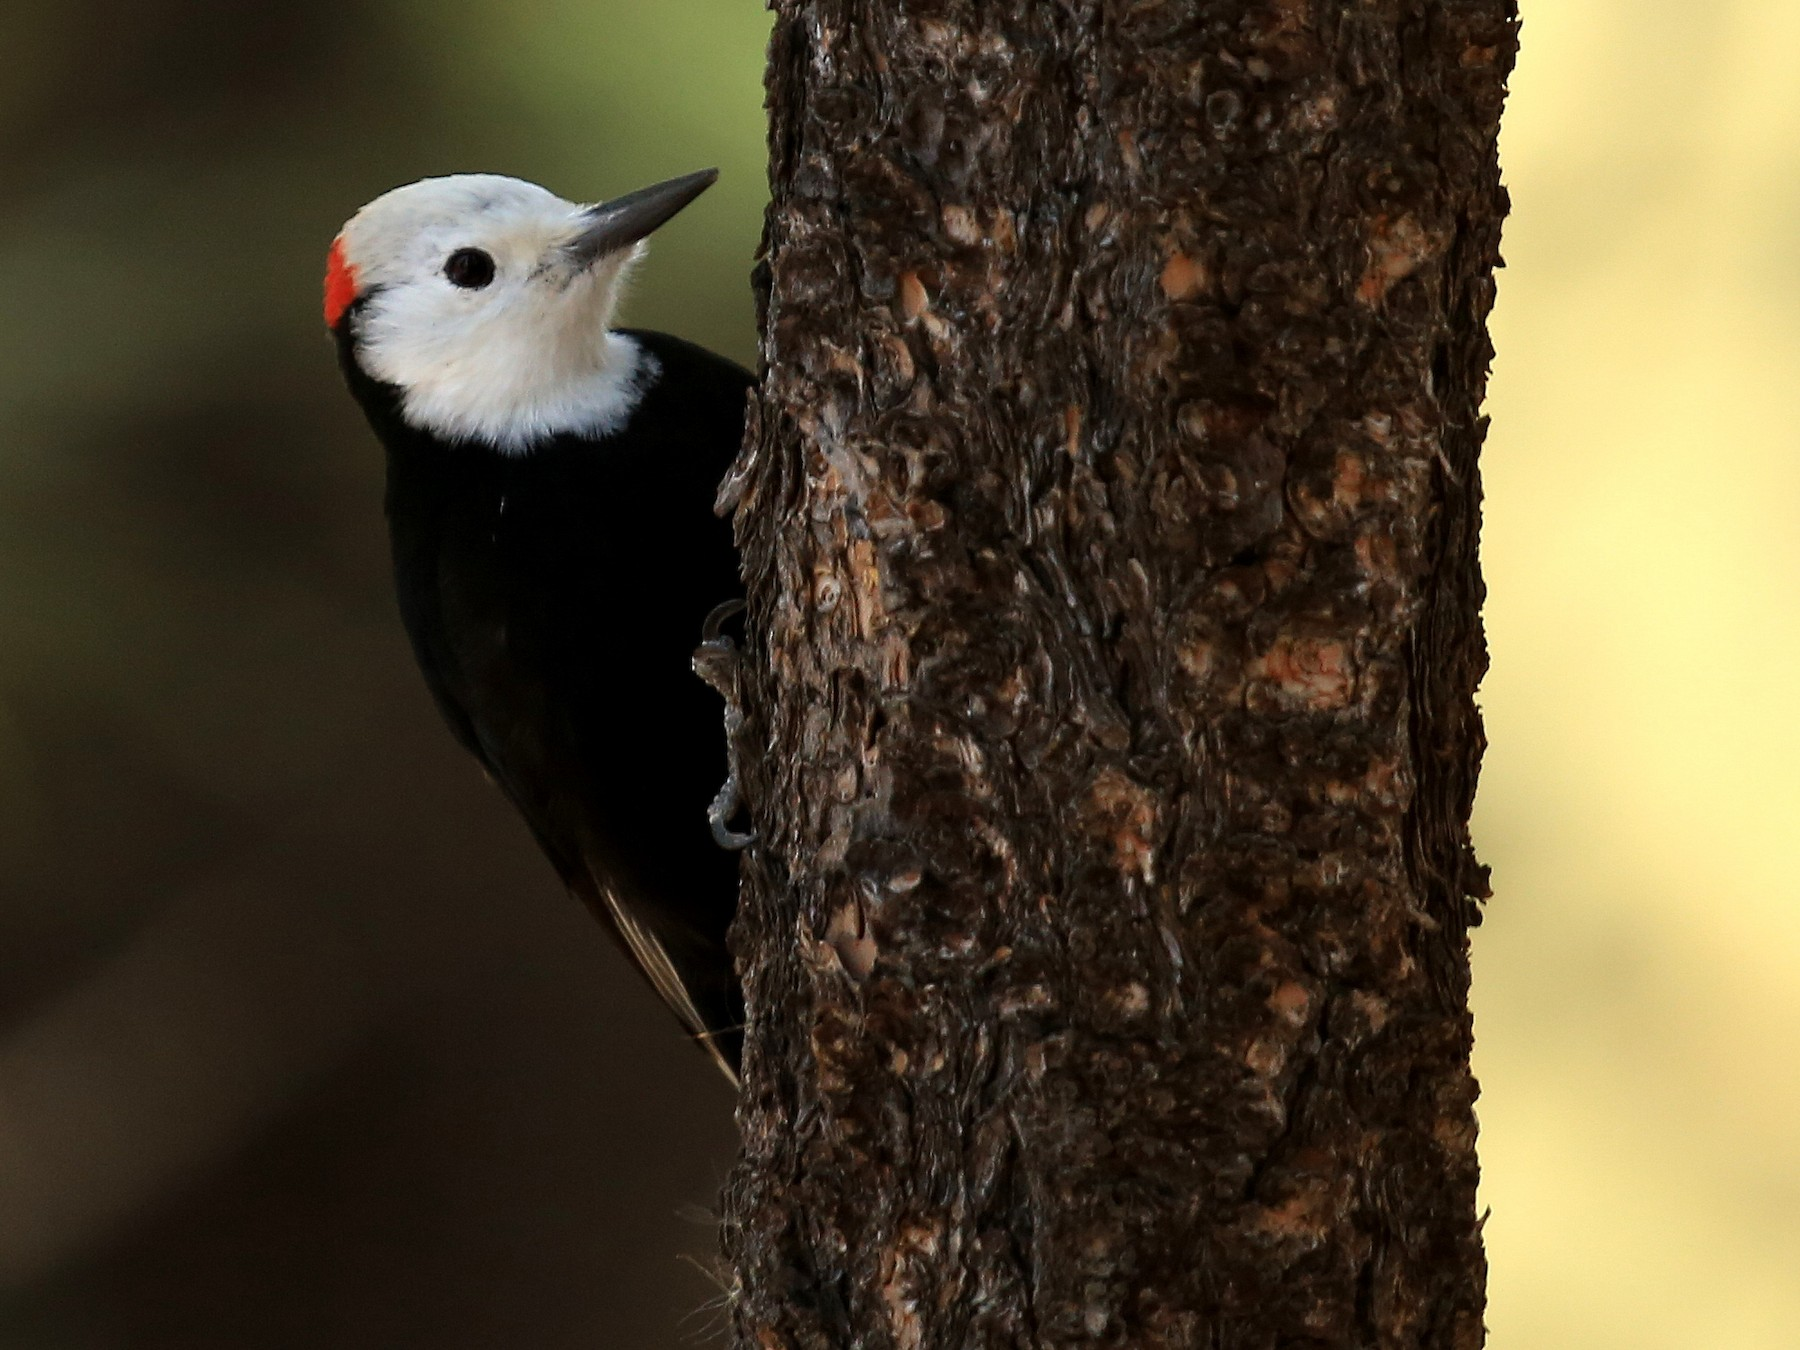 White-headed Woodpecker - Tim Lenz